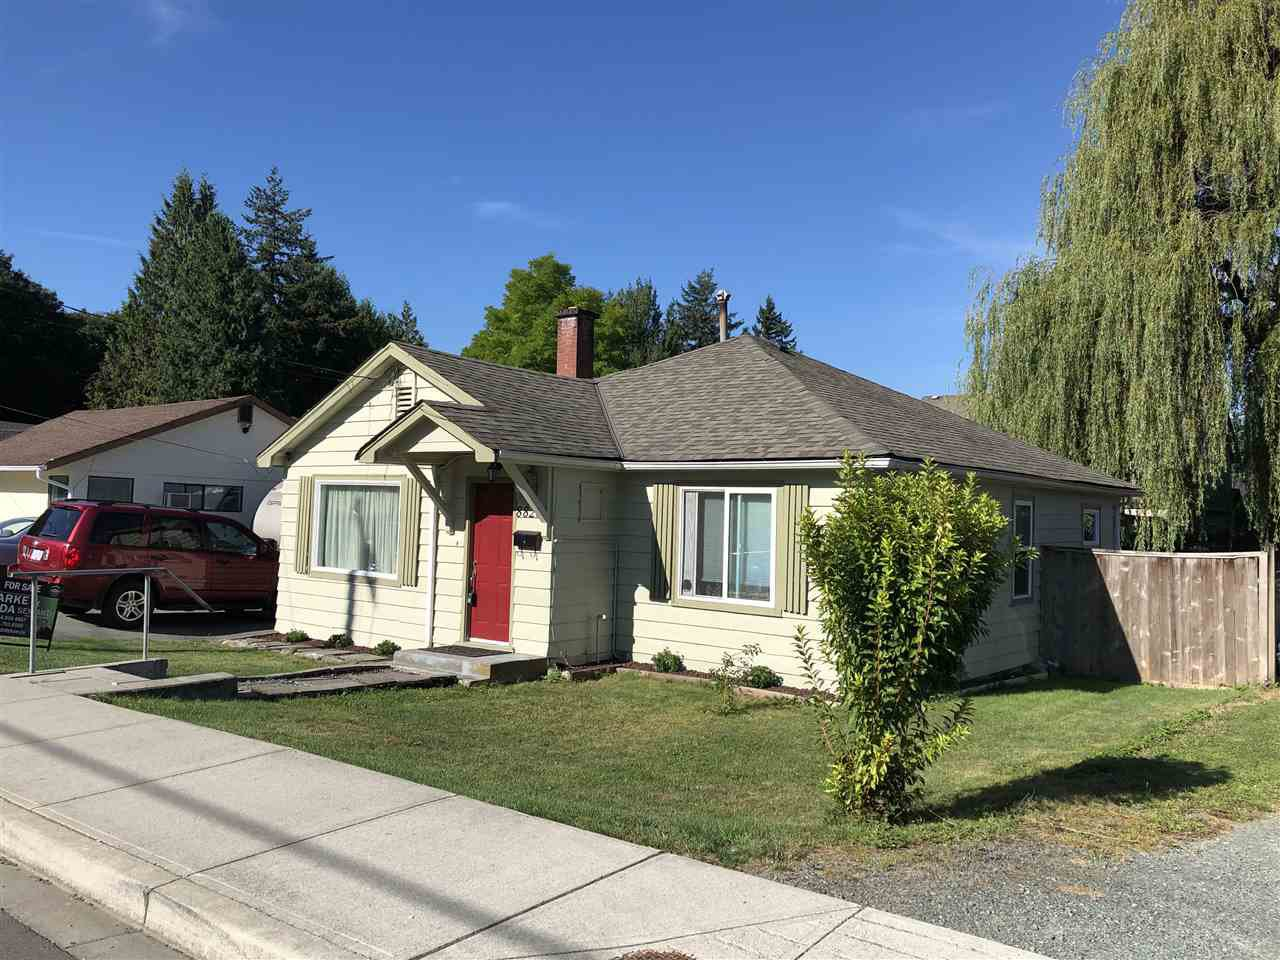 Main Photo: 8825 EDWARD Street in Chilliwack: Chilliwack W Young-Well House for sale : MLS®# R2491972